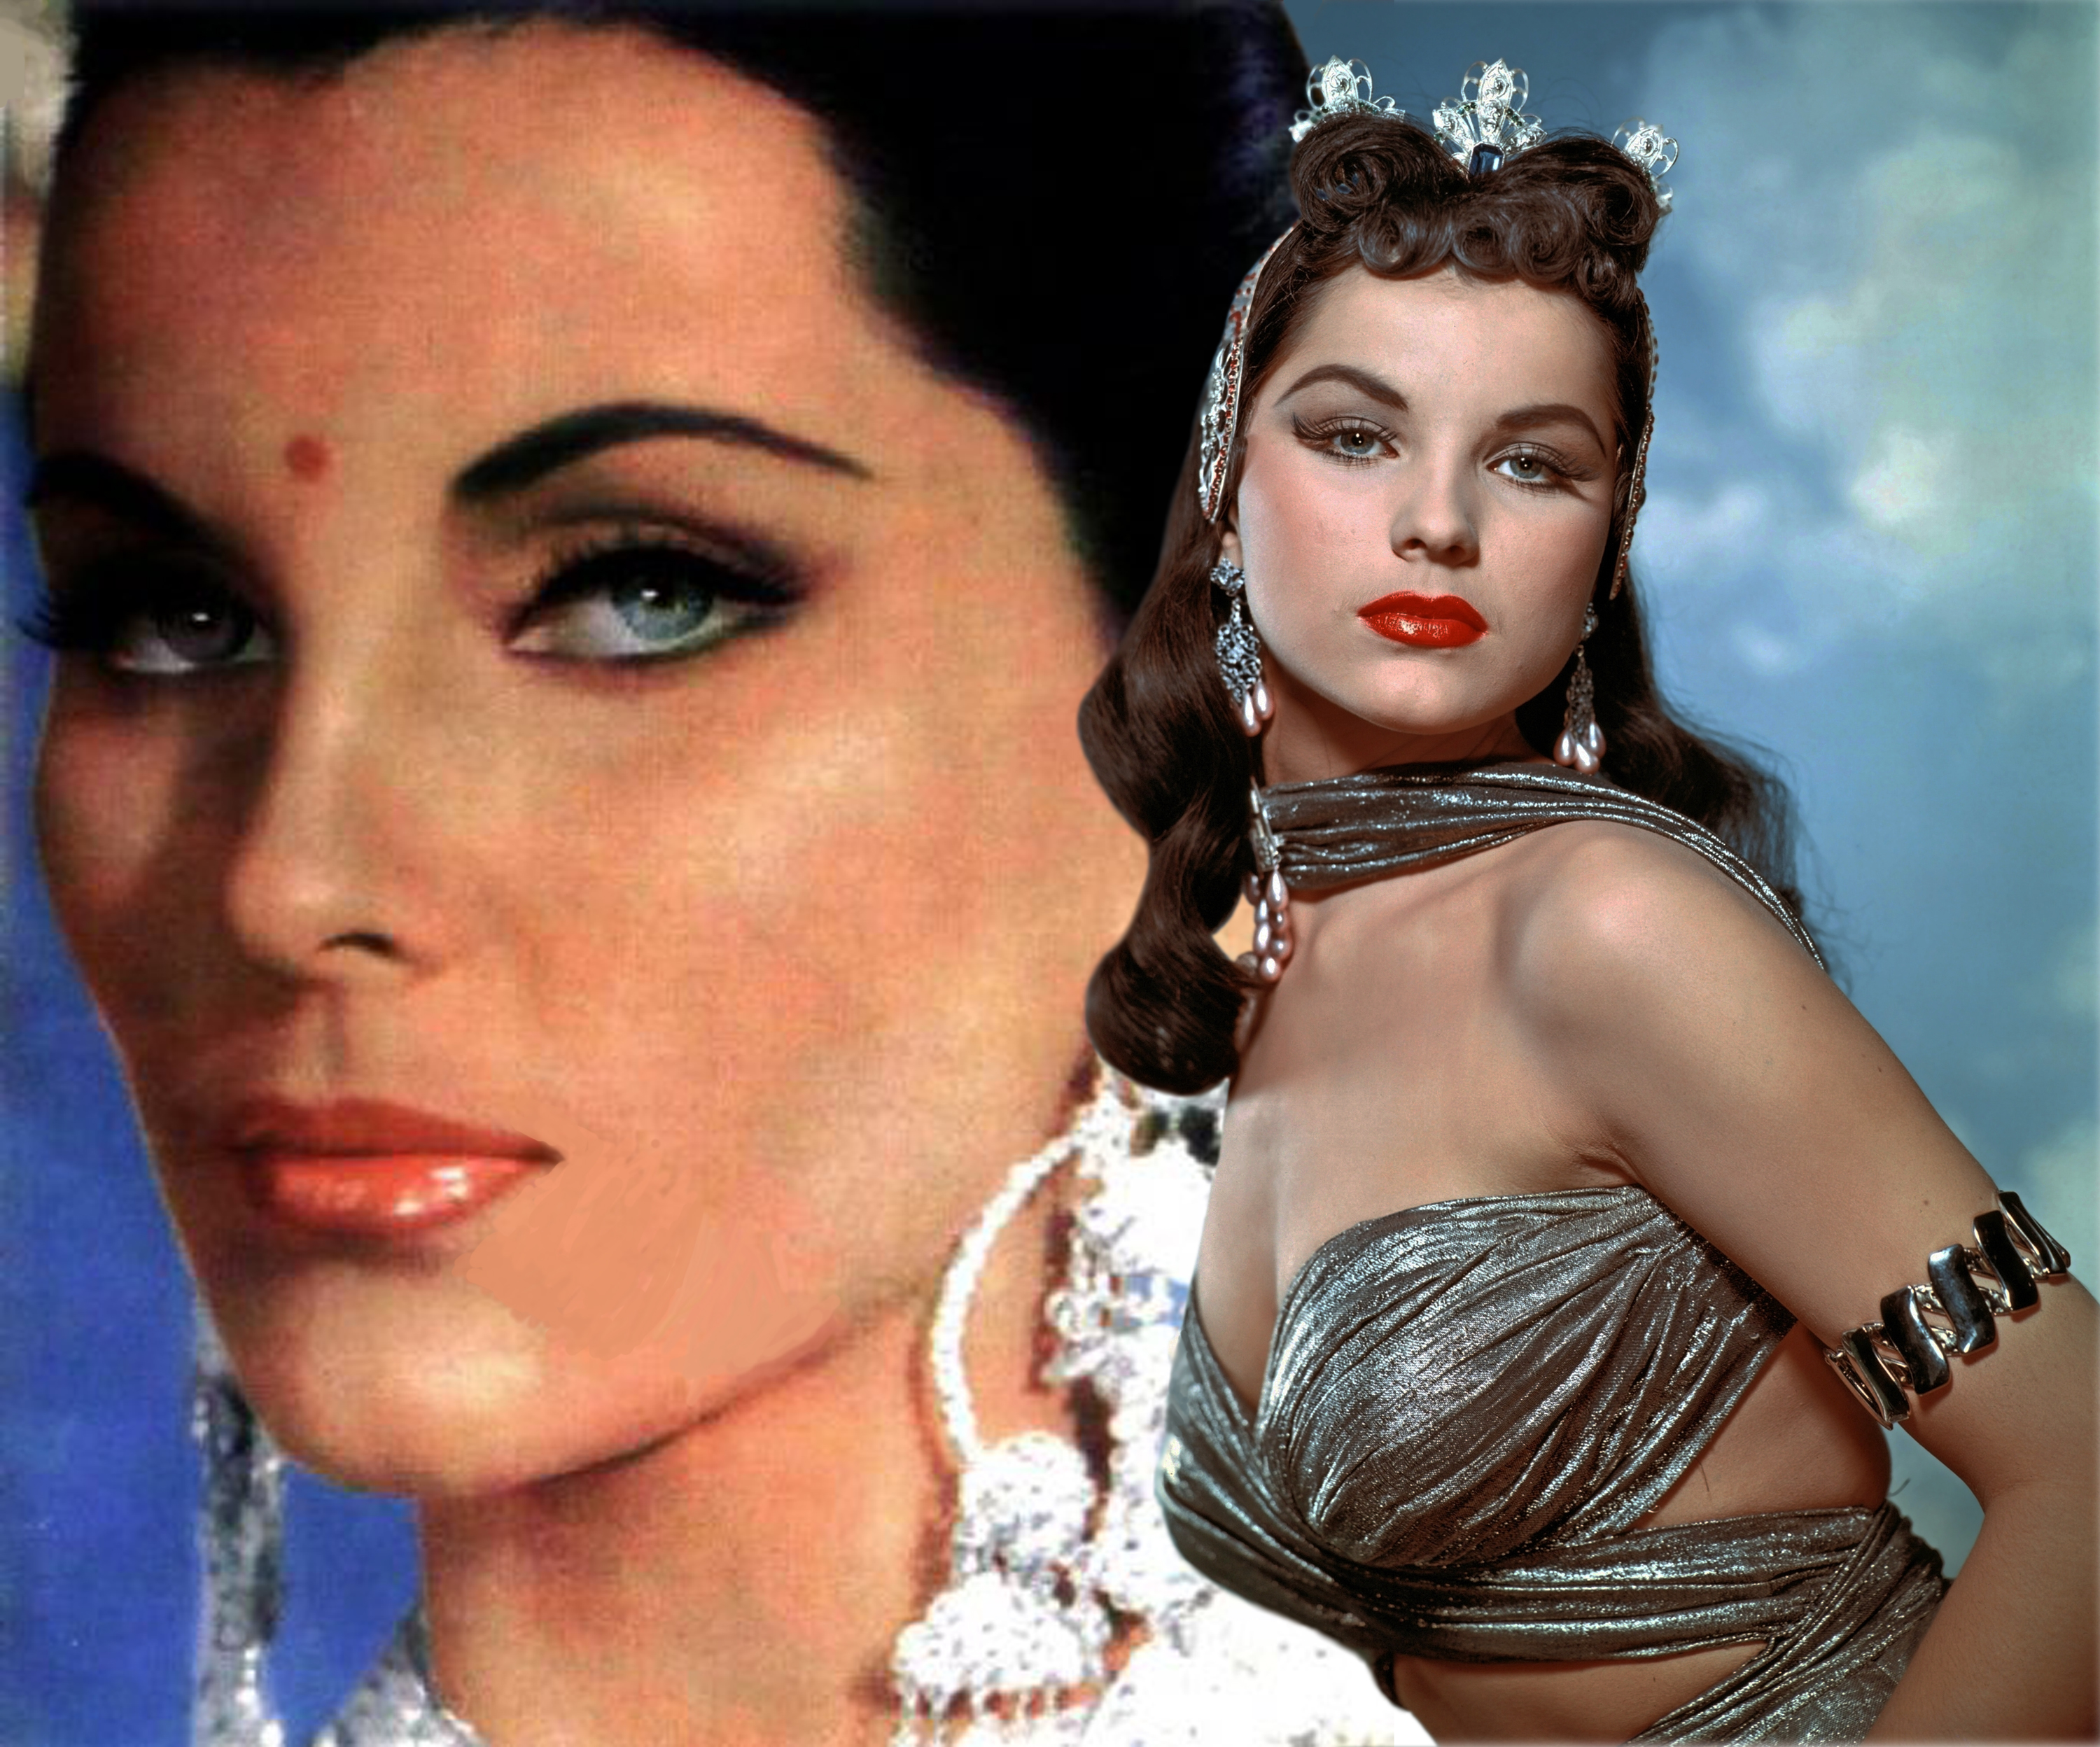 Mark Rappaport. Debra Paget, 2015